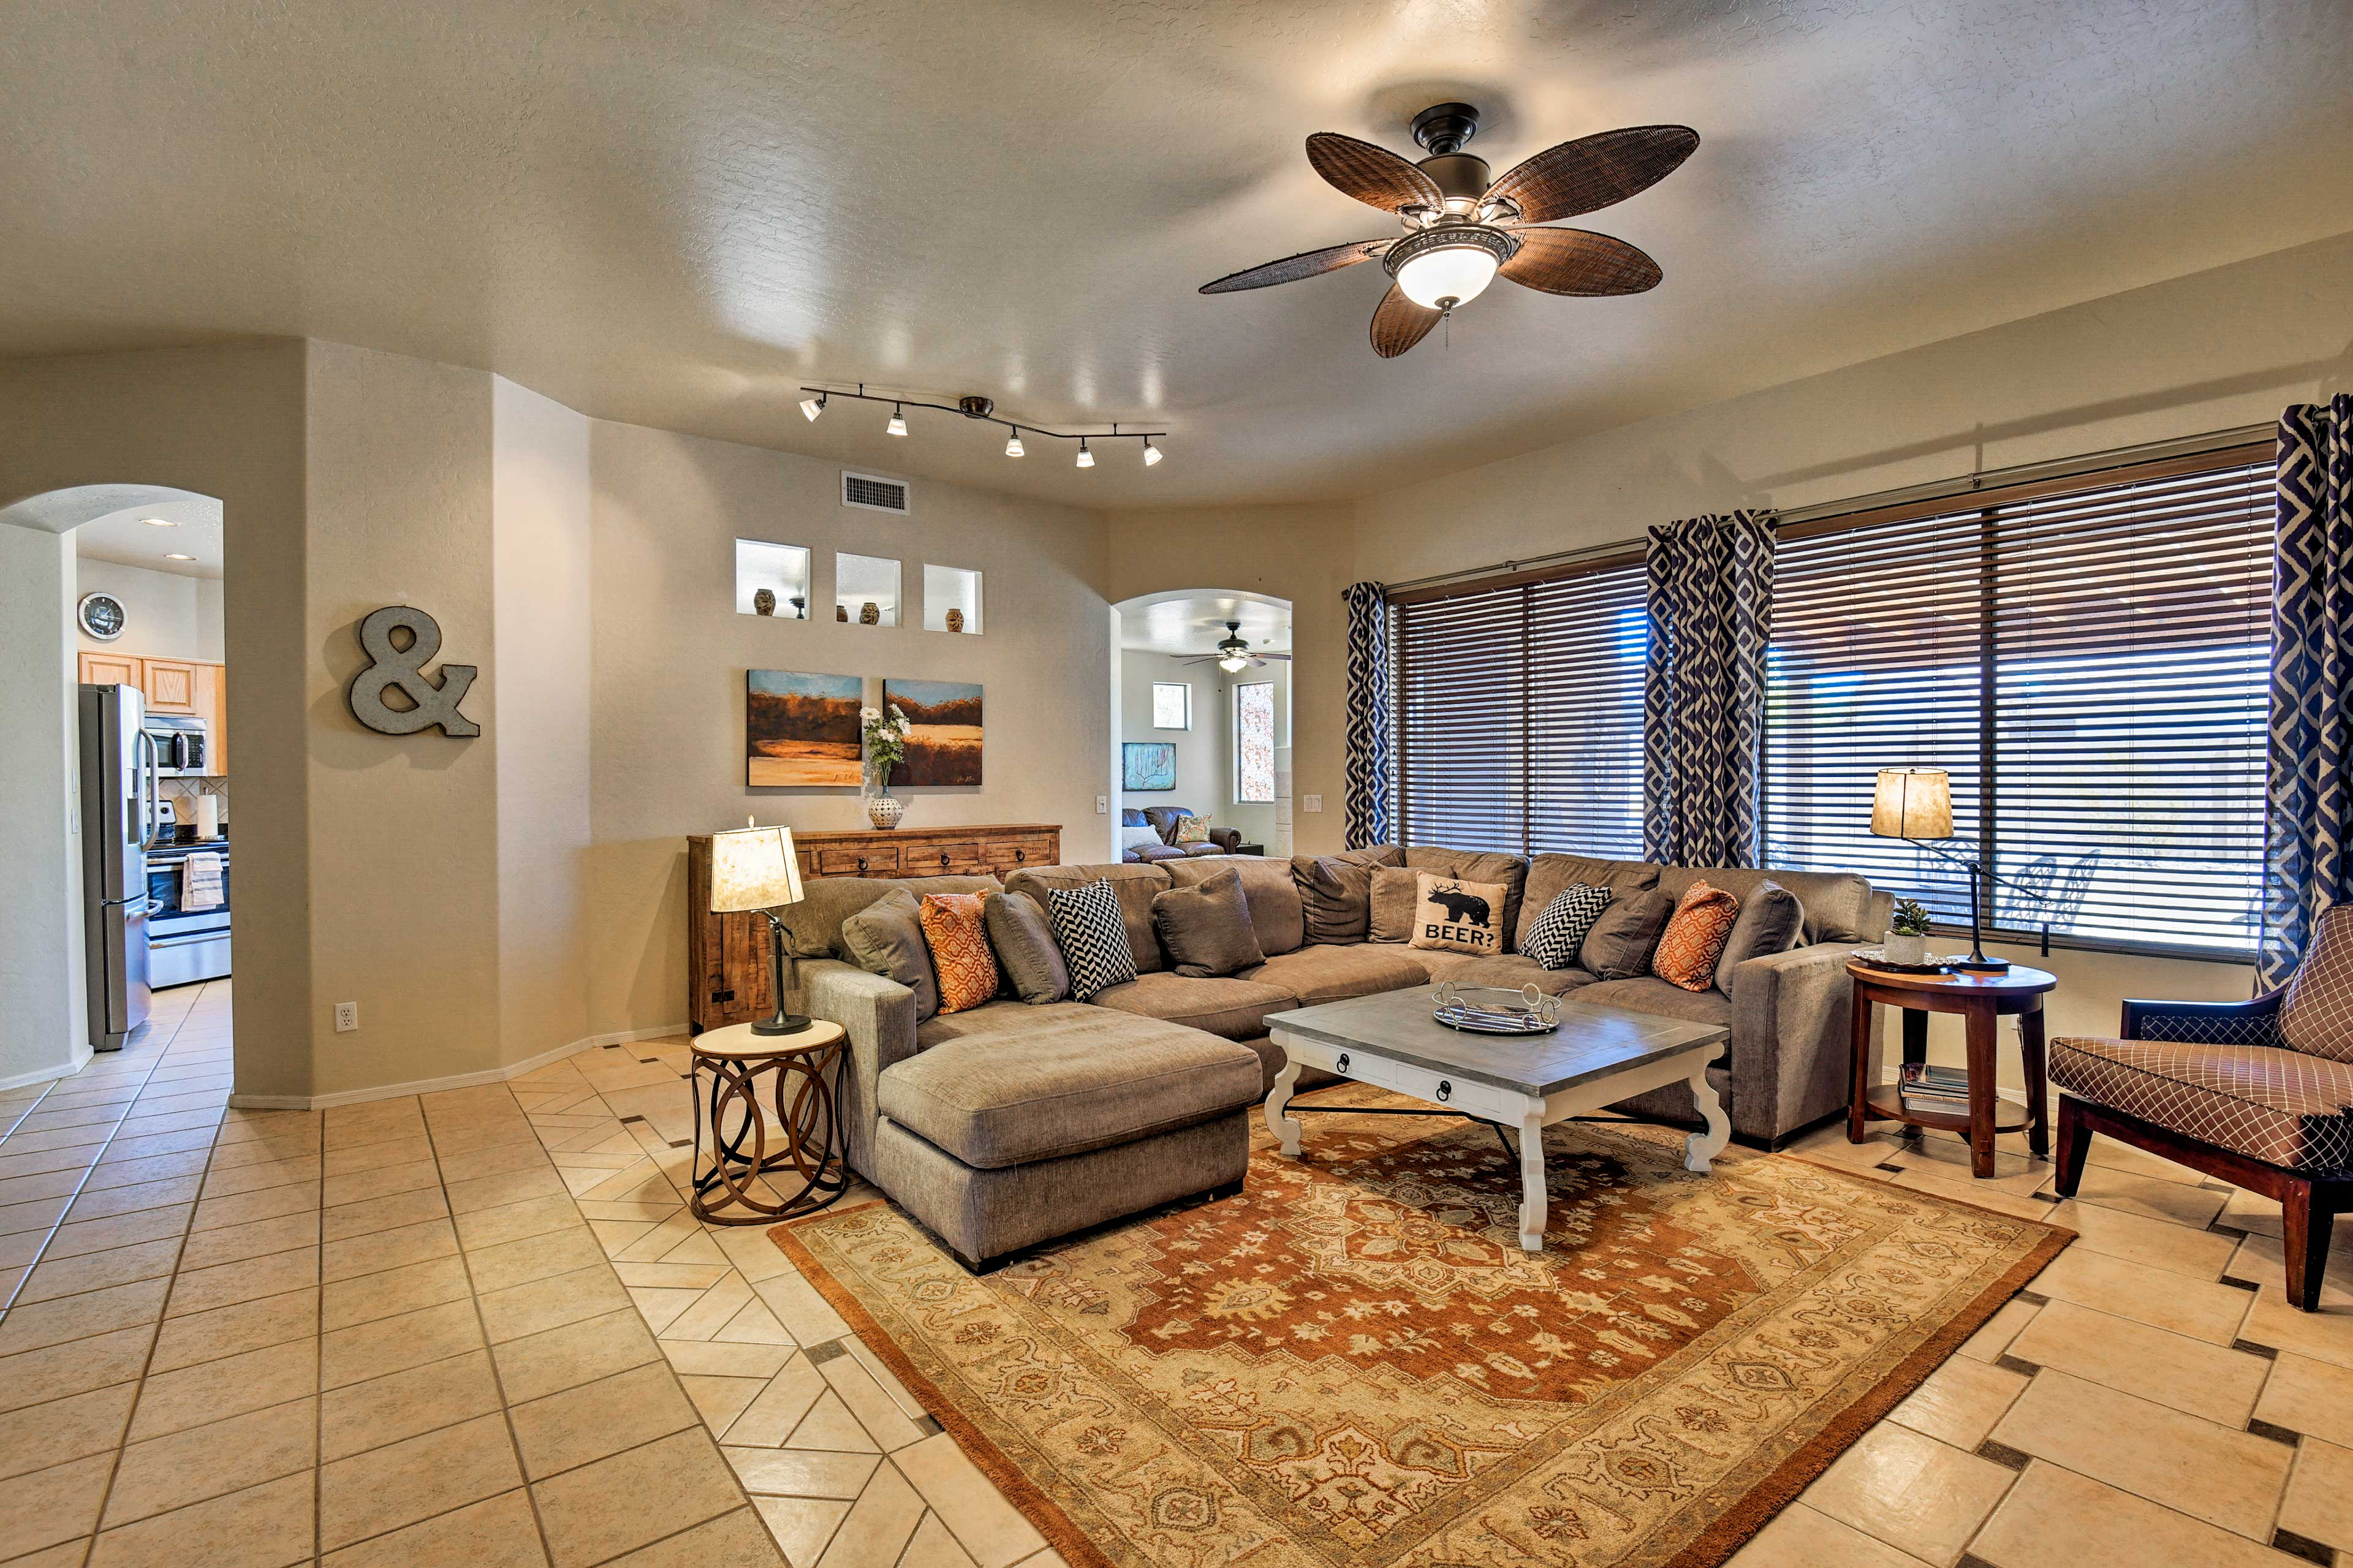 The home has plenty of space for your group of 9.